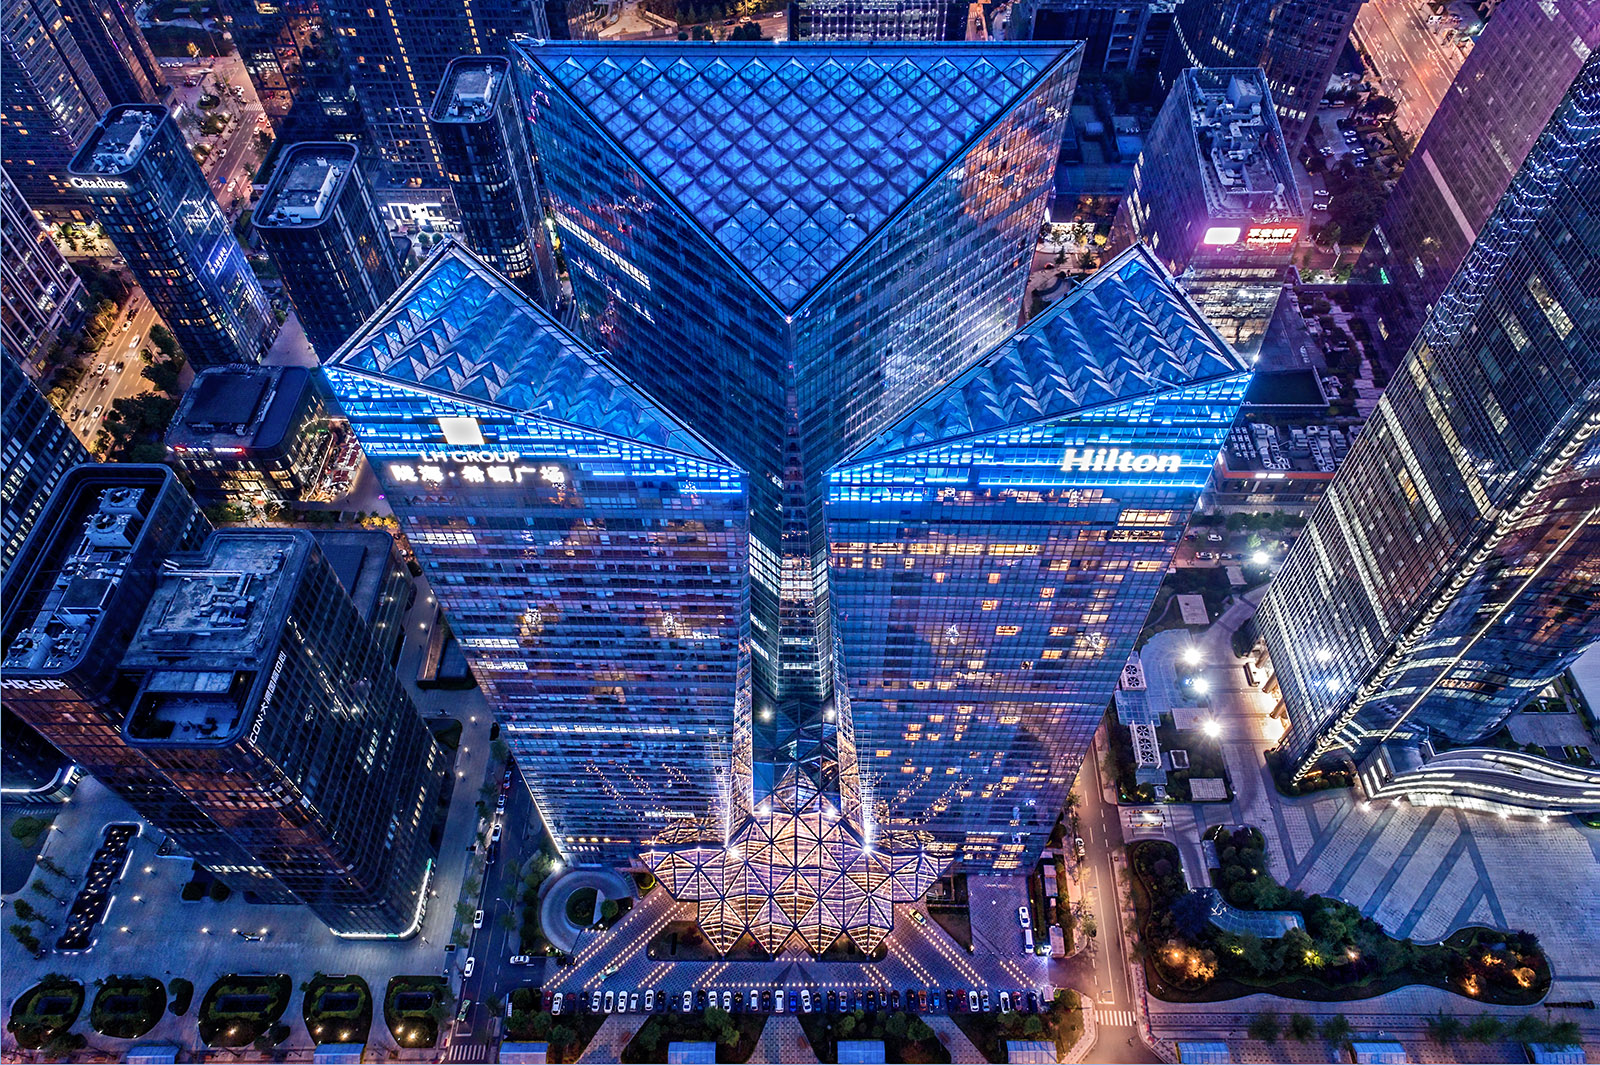 Aerial Drone photography of the Seaton Plaza in Chengdu, China by Paul Dingman